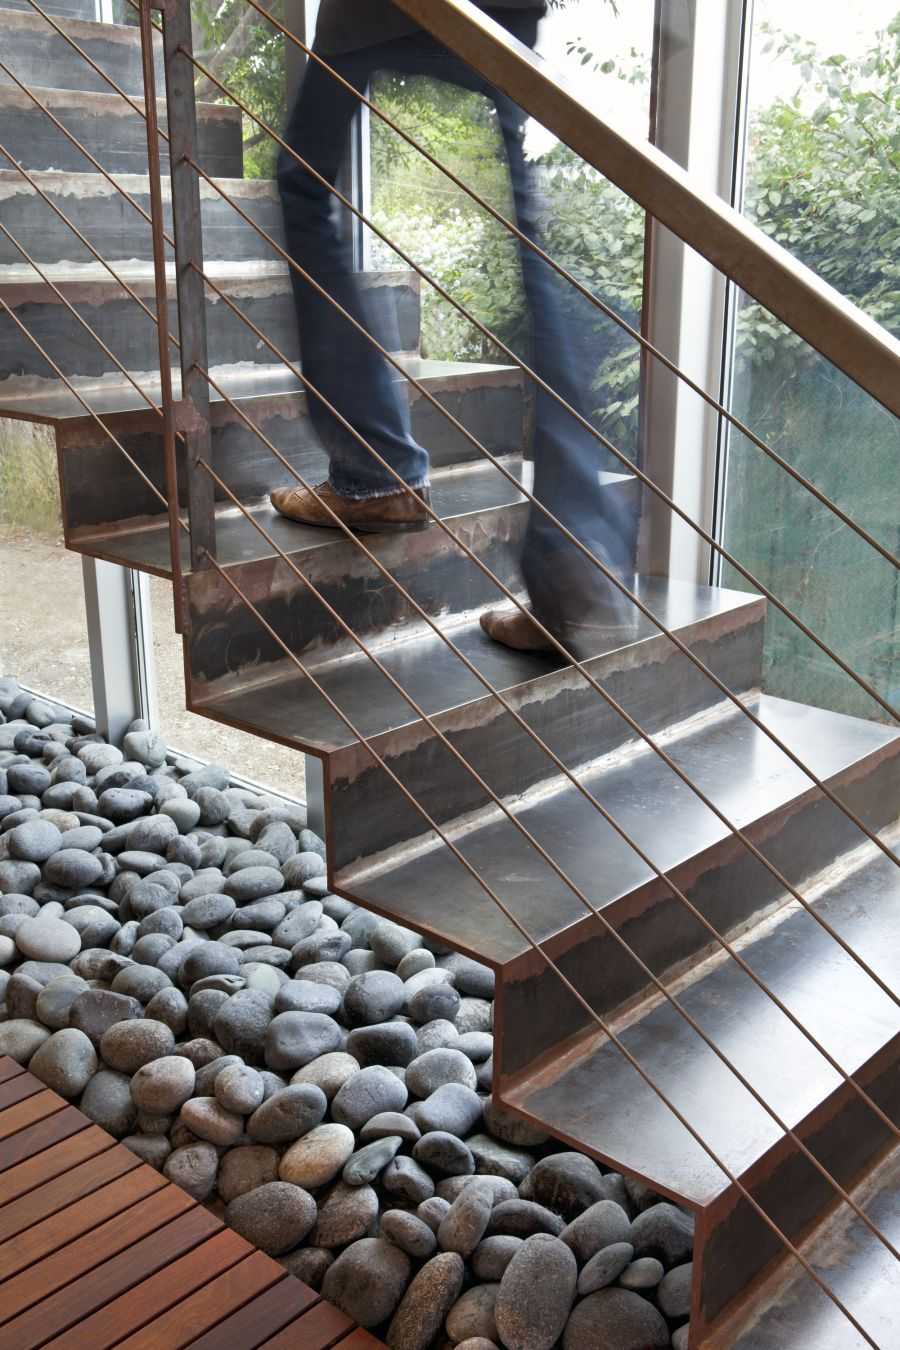 Awesome Modern House Design With Elegant Aesthetic Interior And Exterior : Smart Use Of River Stone Inside The House Under The Staircase